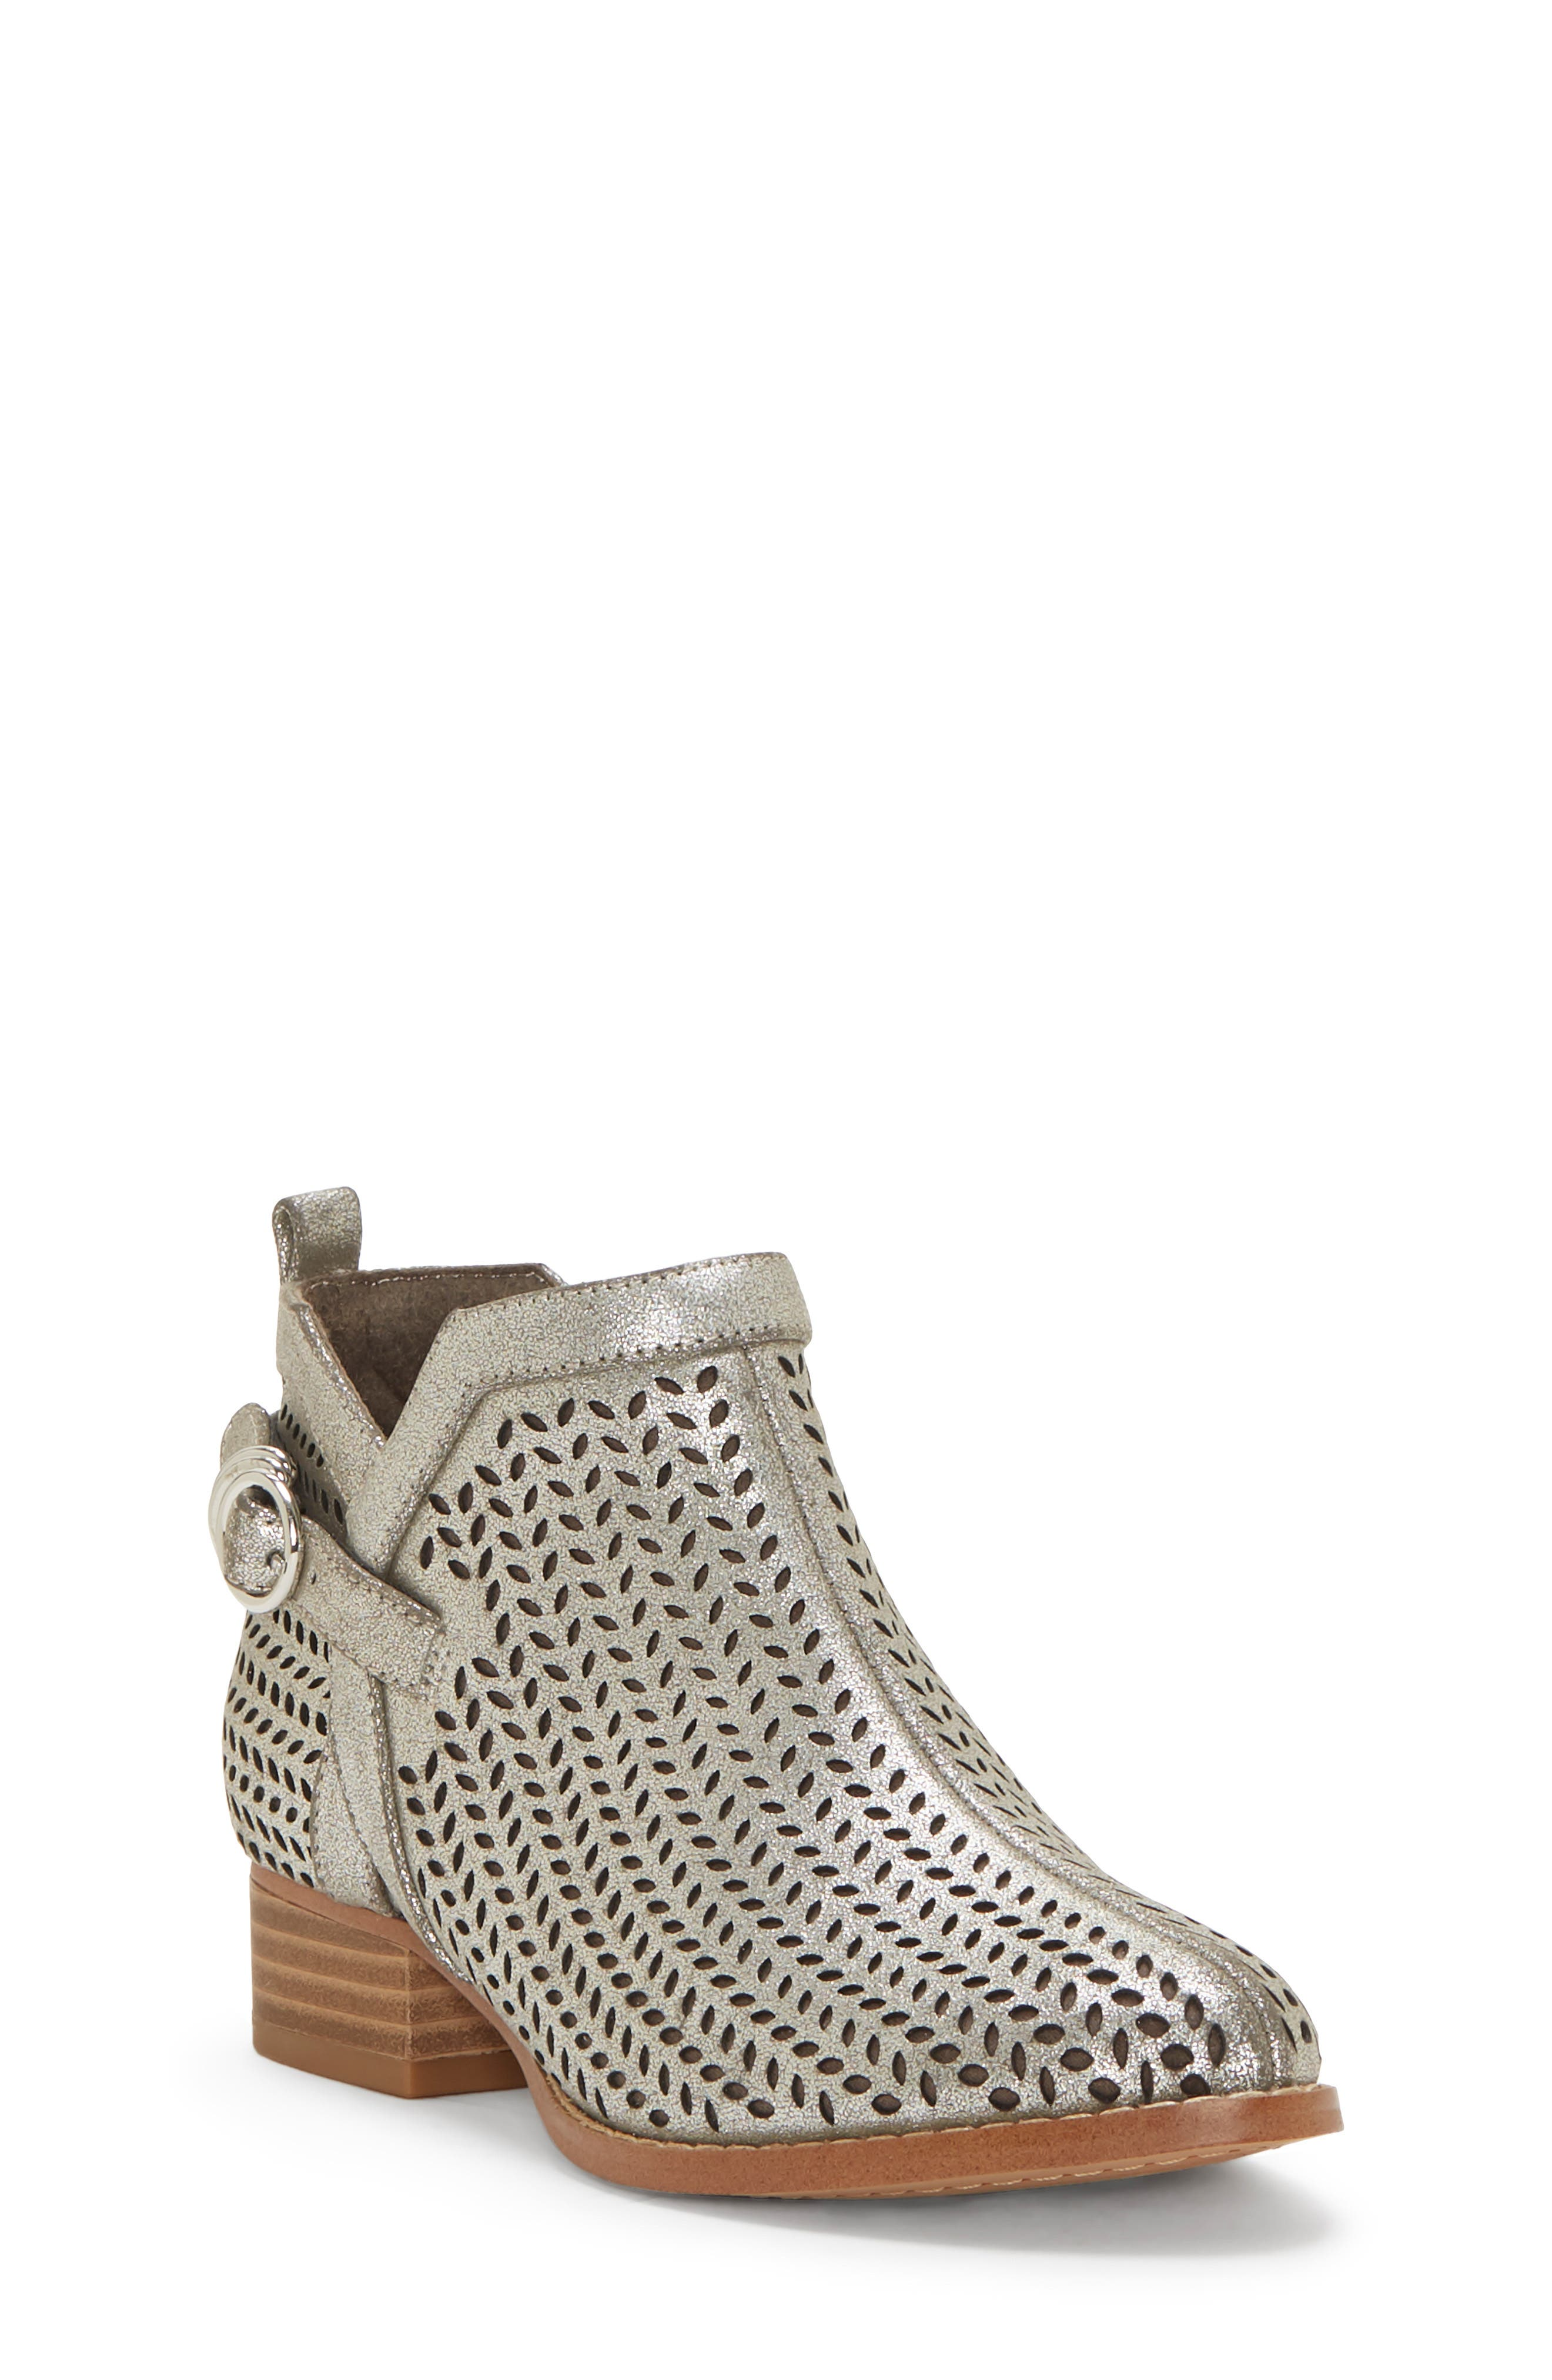 Campina Perforated Bootie,                         Main,                         color, DARK SILVER/ TAUPE